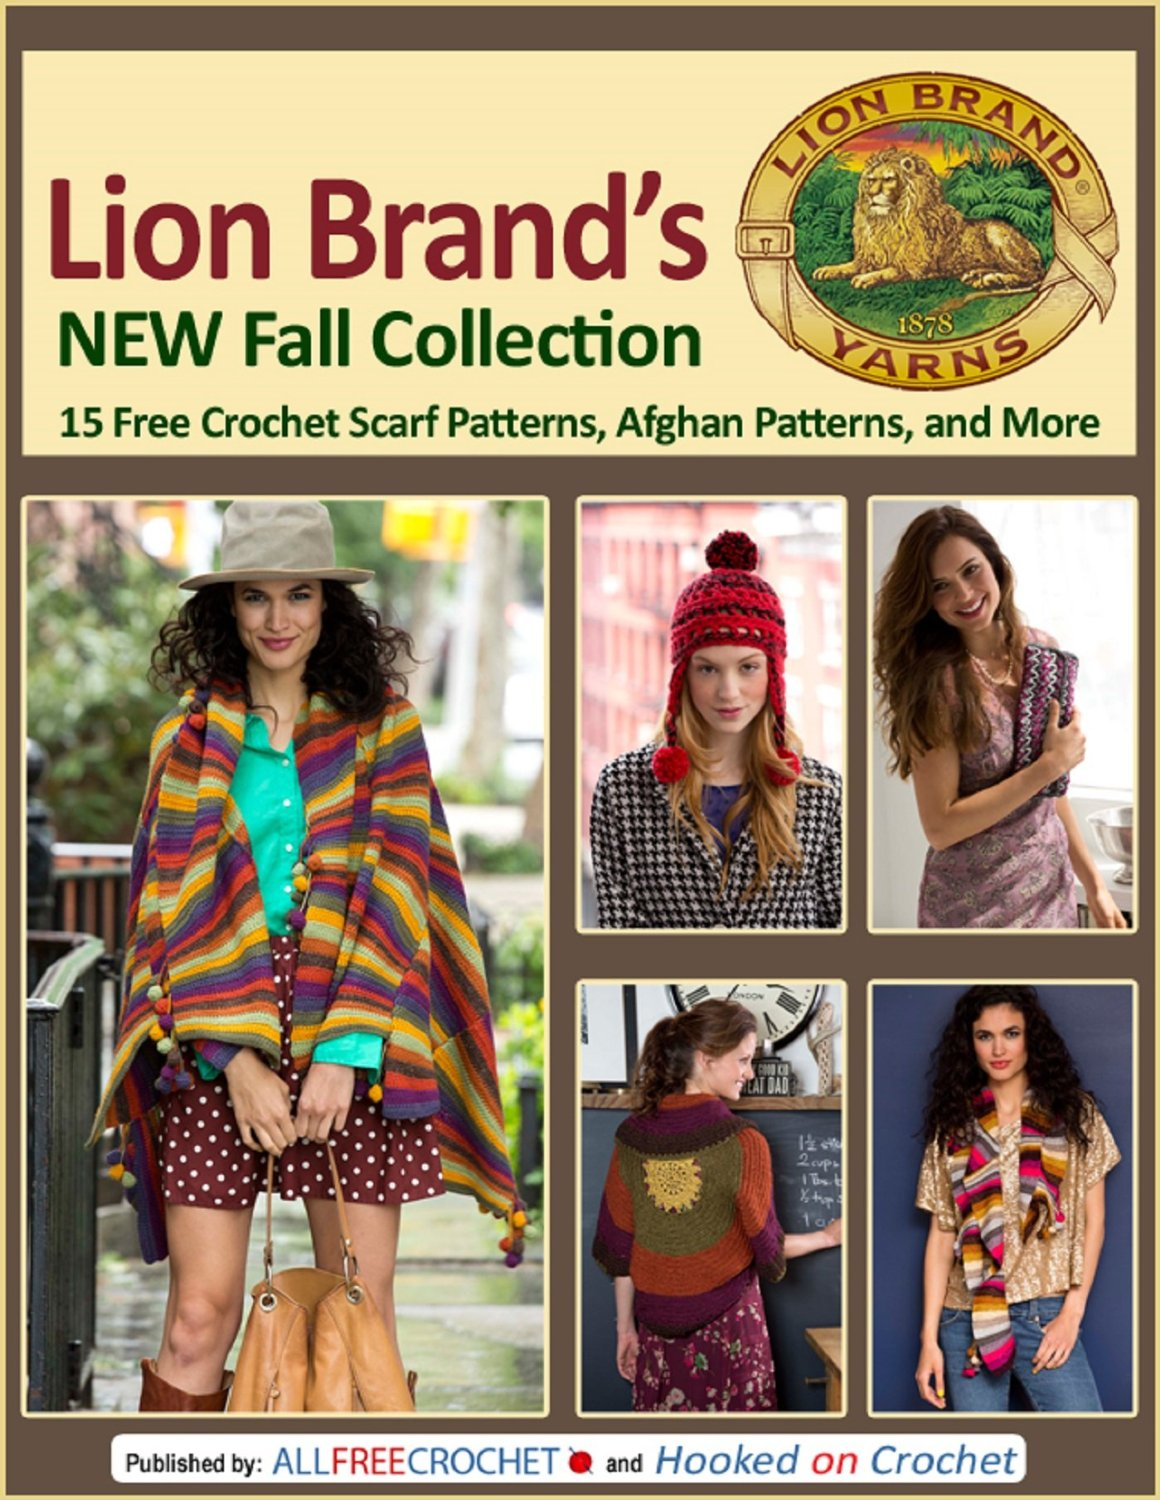 Lion Brand's New Fall Collection: 15 Free Crochet Scarf Patterns, Afghan Patterns, and More free download